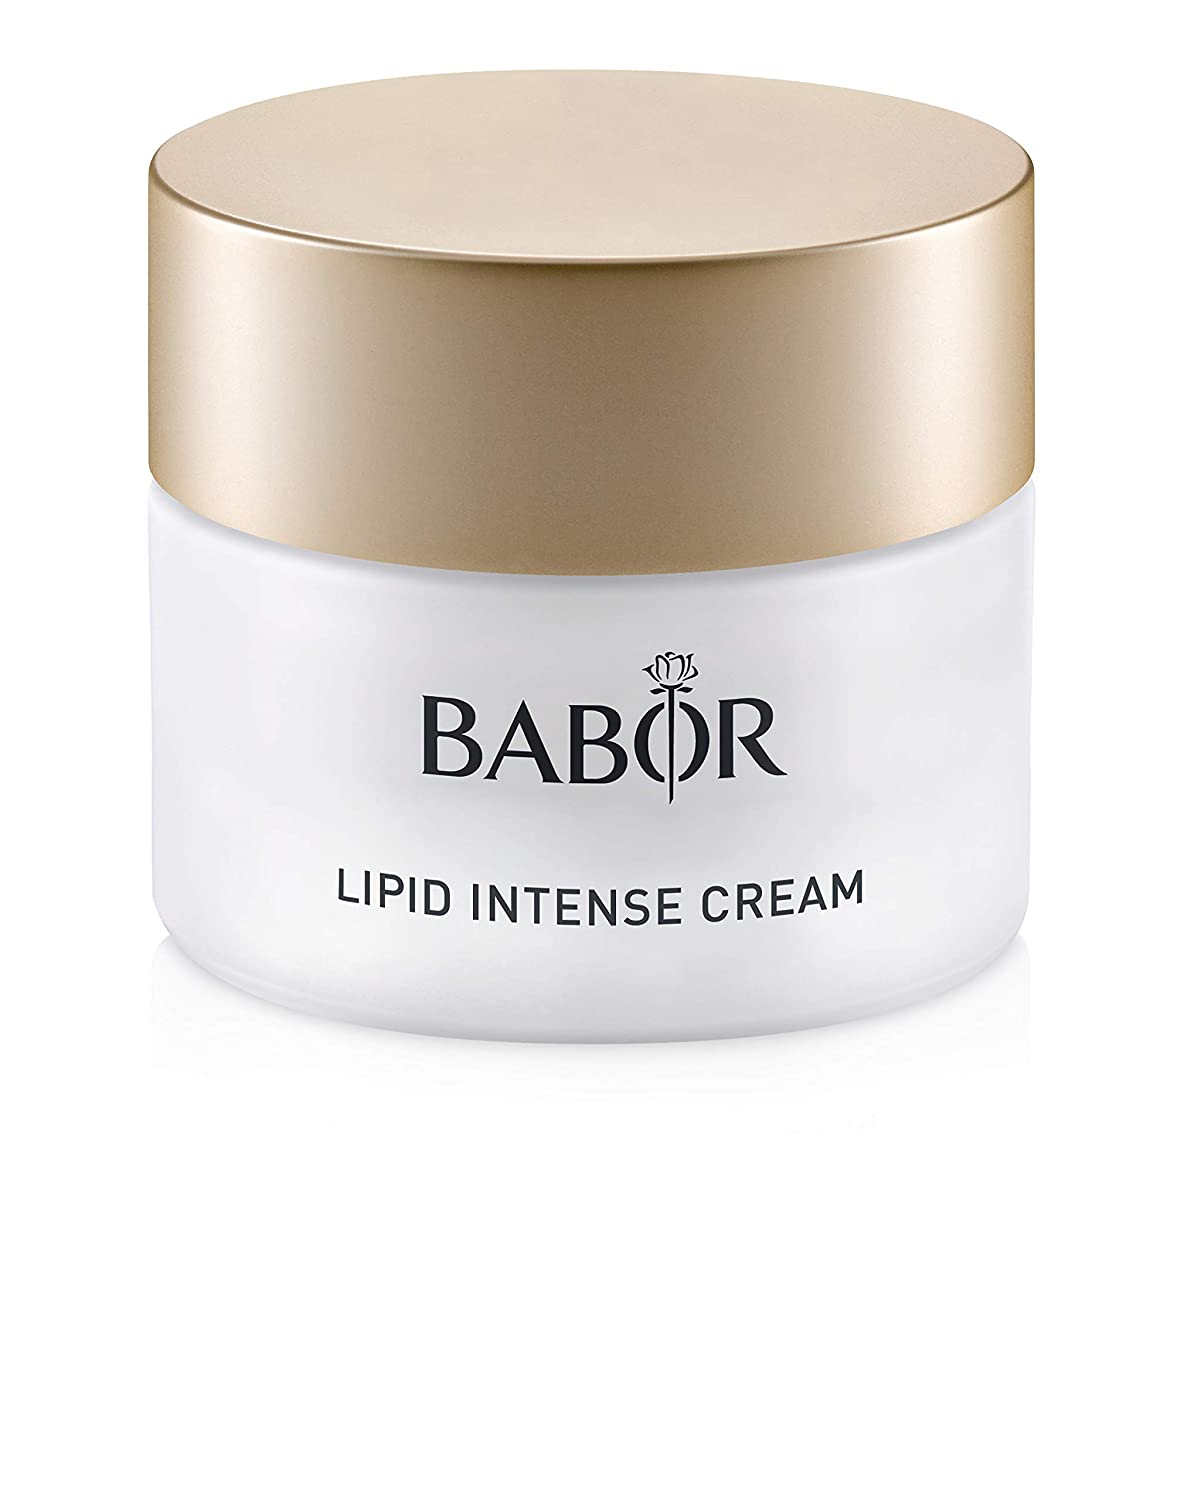 BABOR Lipid Intense Cream, Moisturizing Hyaluronic Acid Face Treatment, Evens Skin Tone and Restores Protective Skin Barrier, Paraben Free